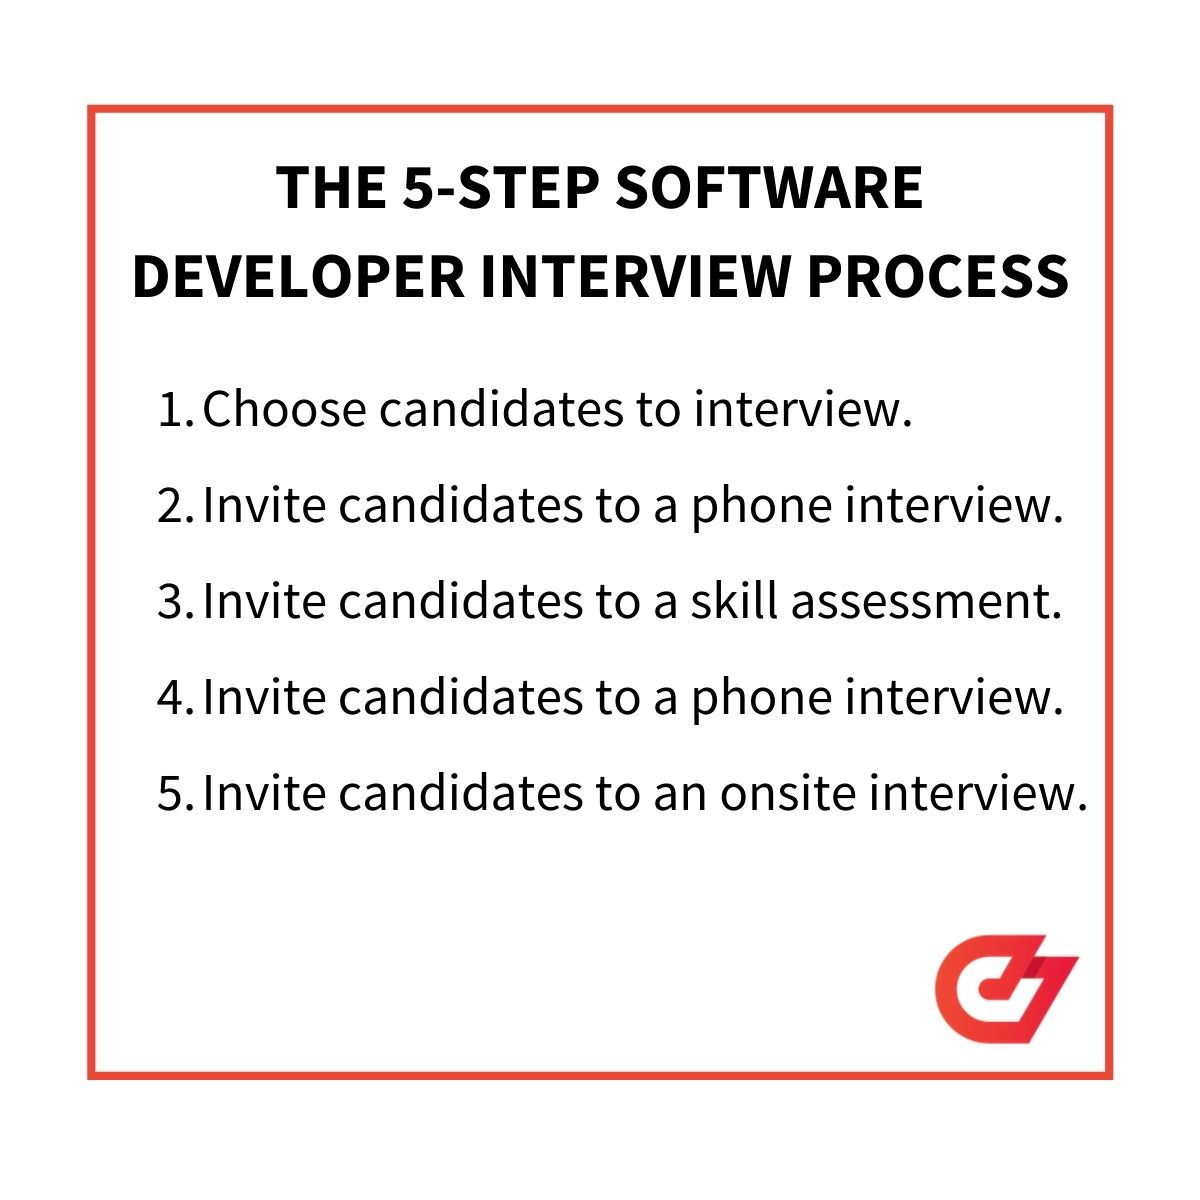 5-step developer interview process